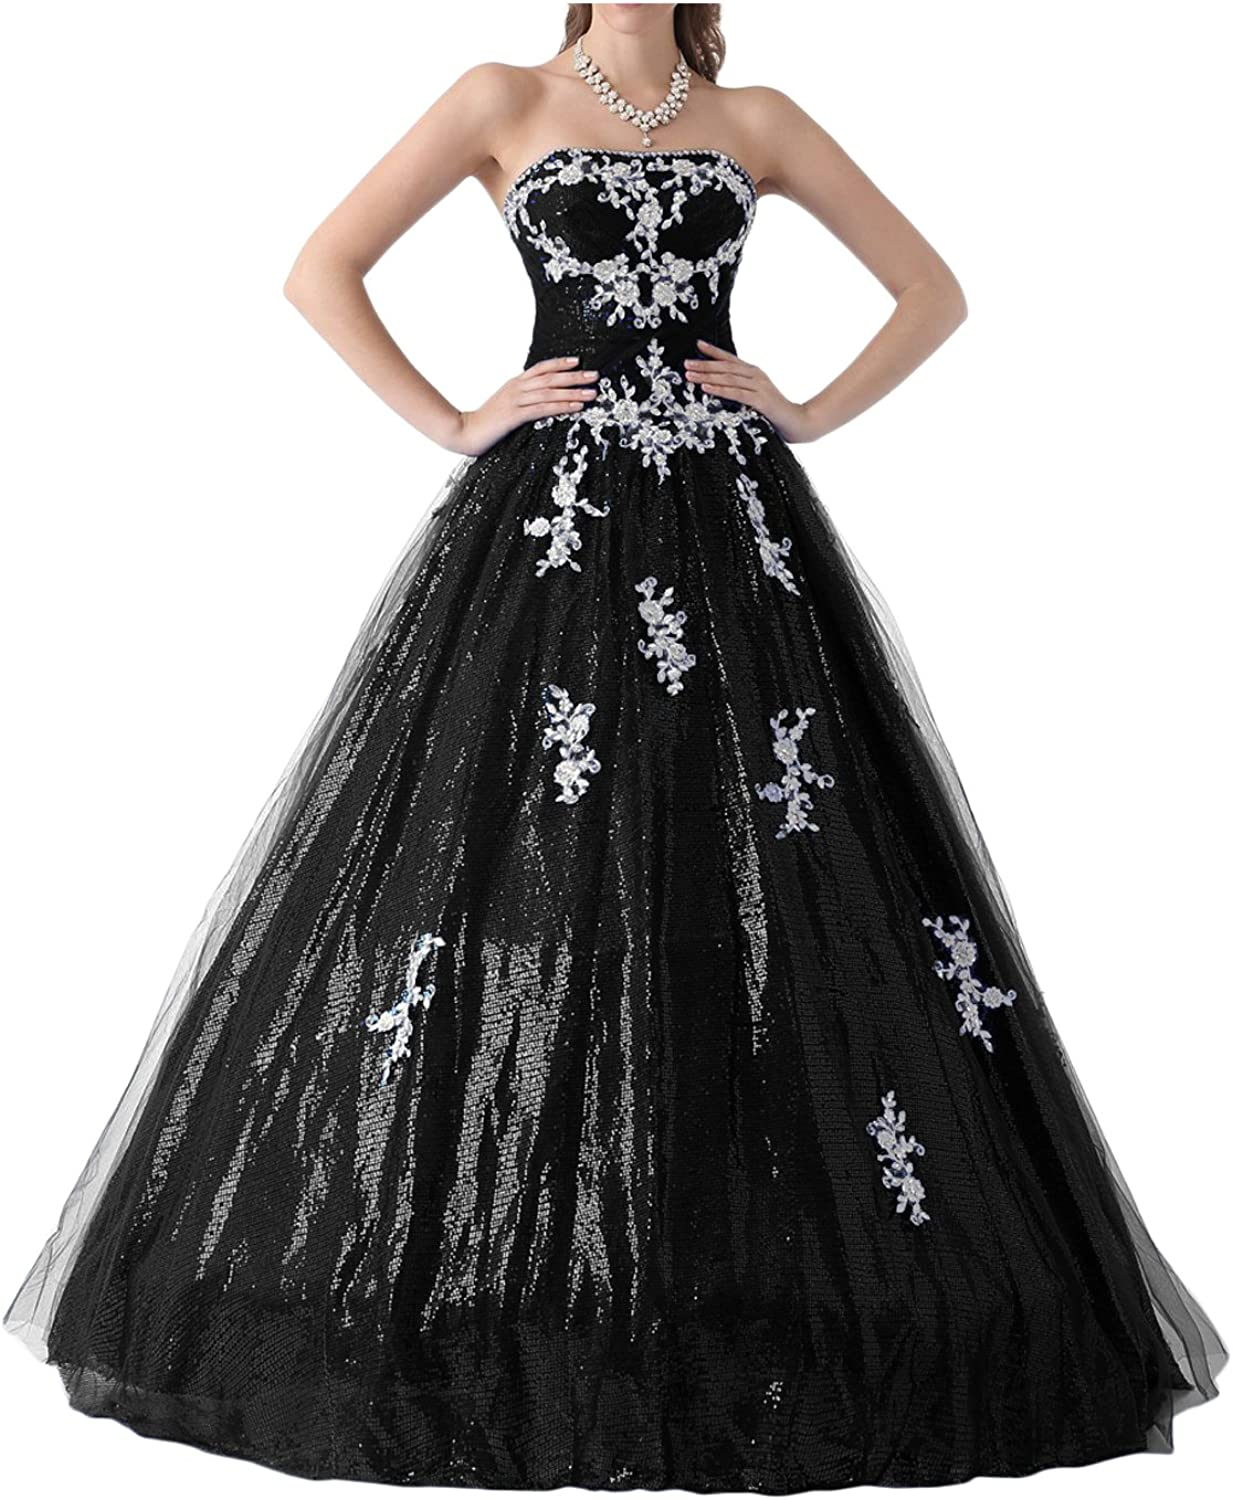 DINGZAN 2018 Sequin and Lace Ball Quinceanera Prom Homecoming Dresses